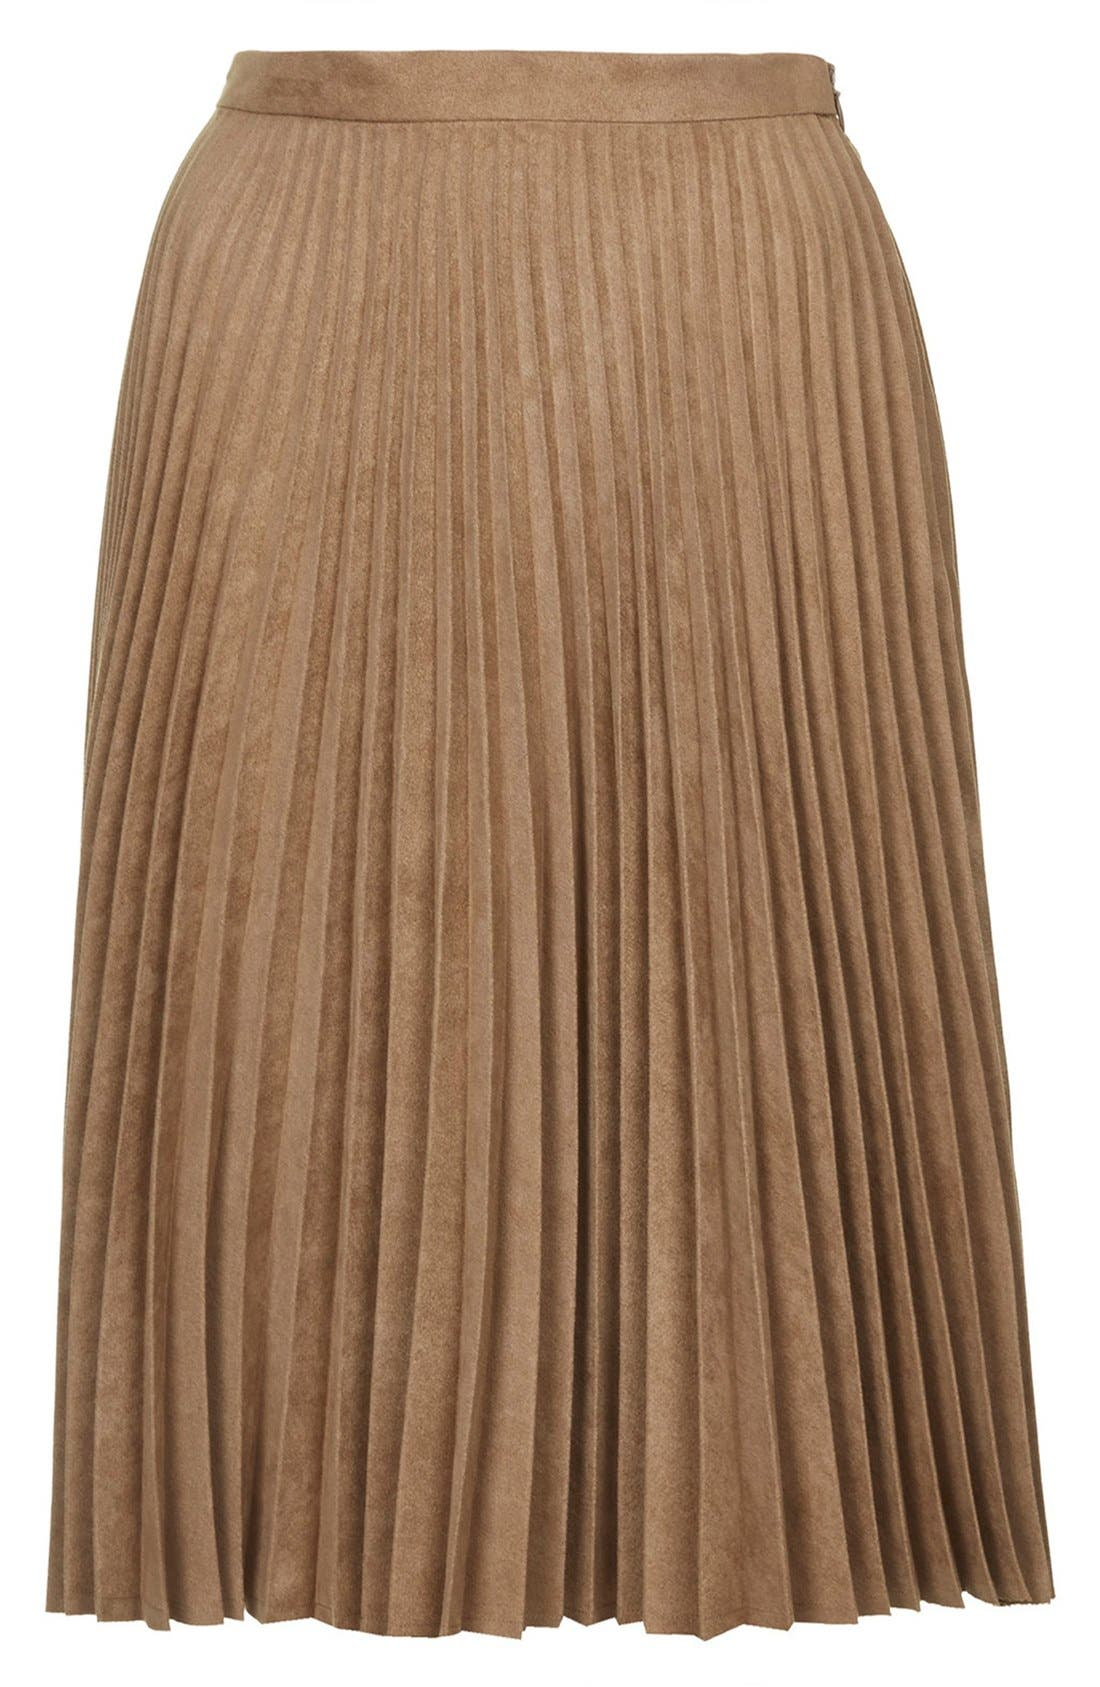 Alternate Image 3  - Topshop Pleated Faux Suede Skirt